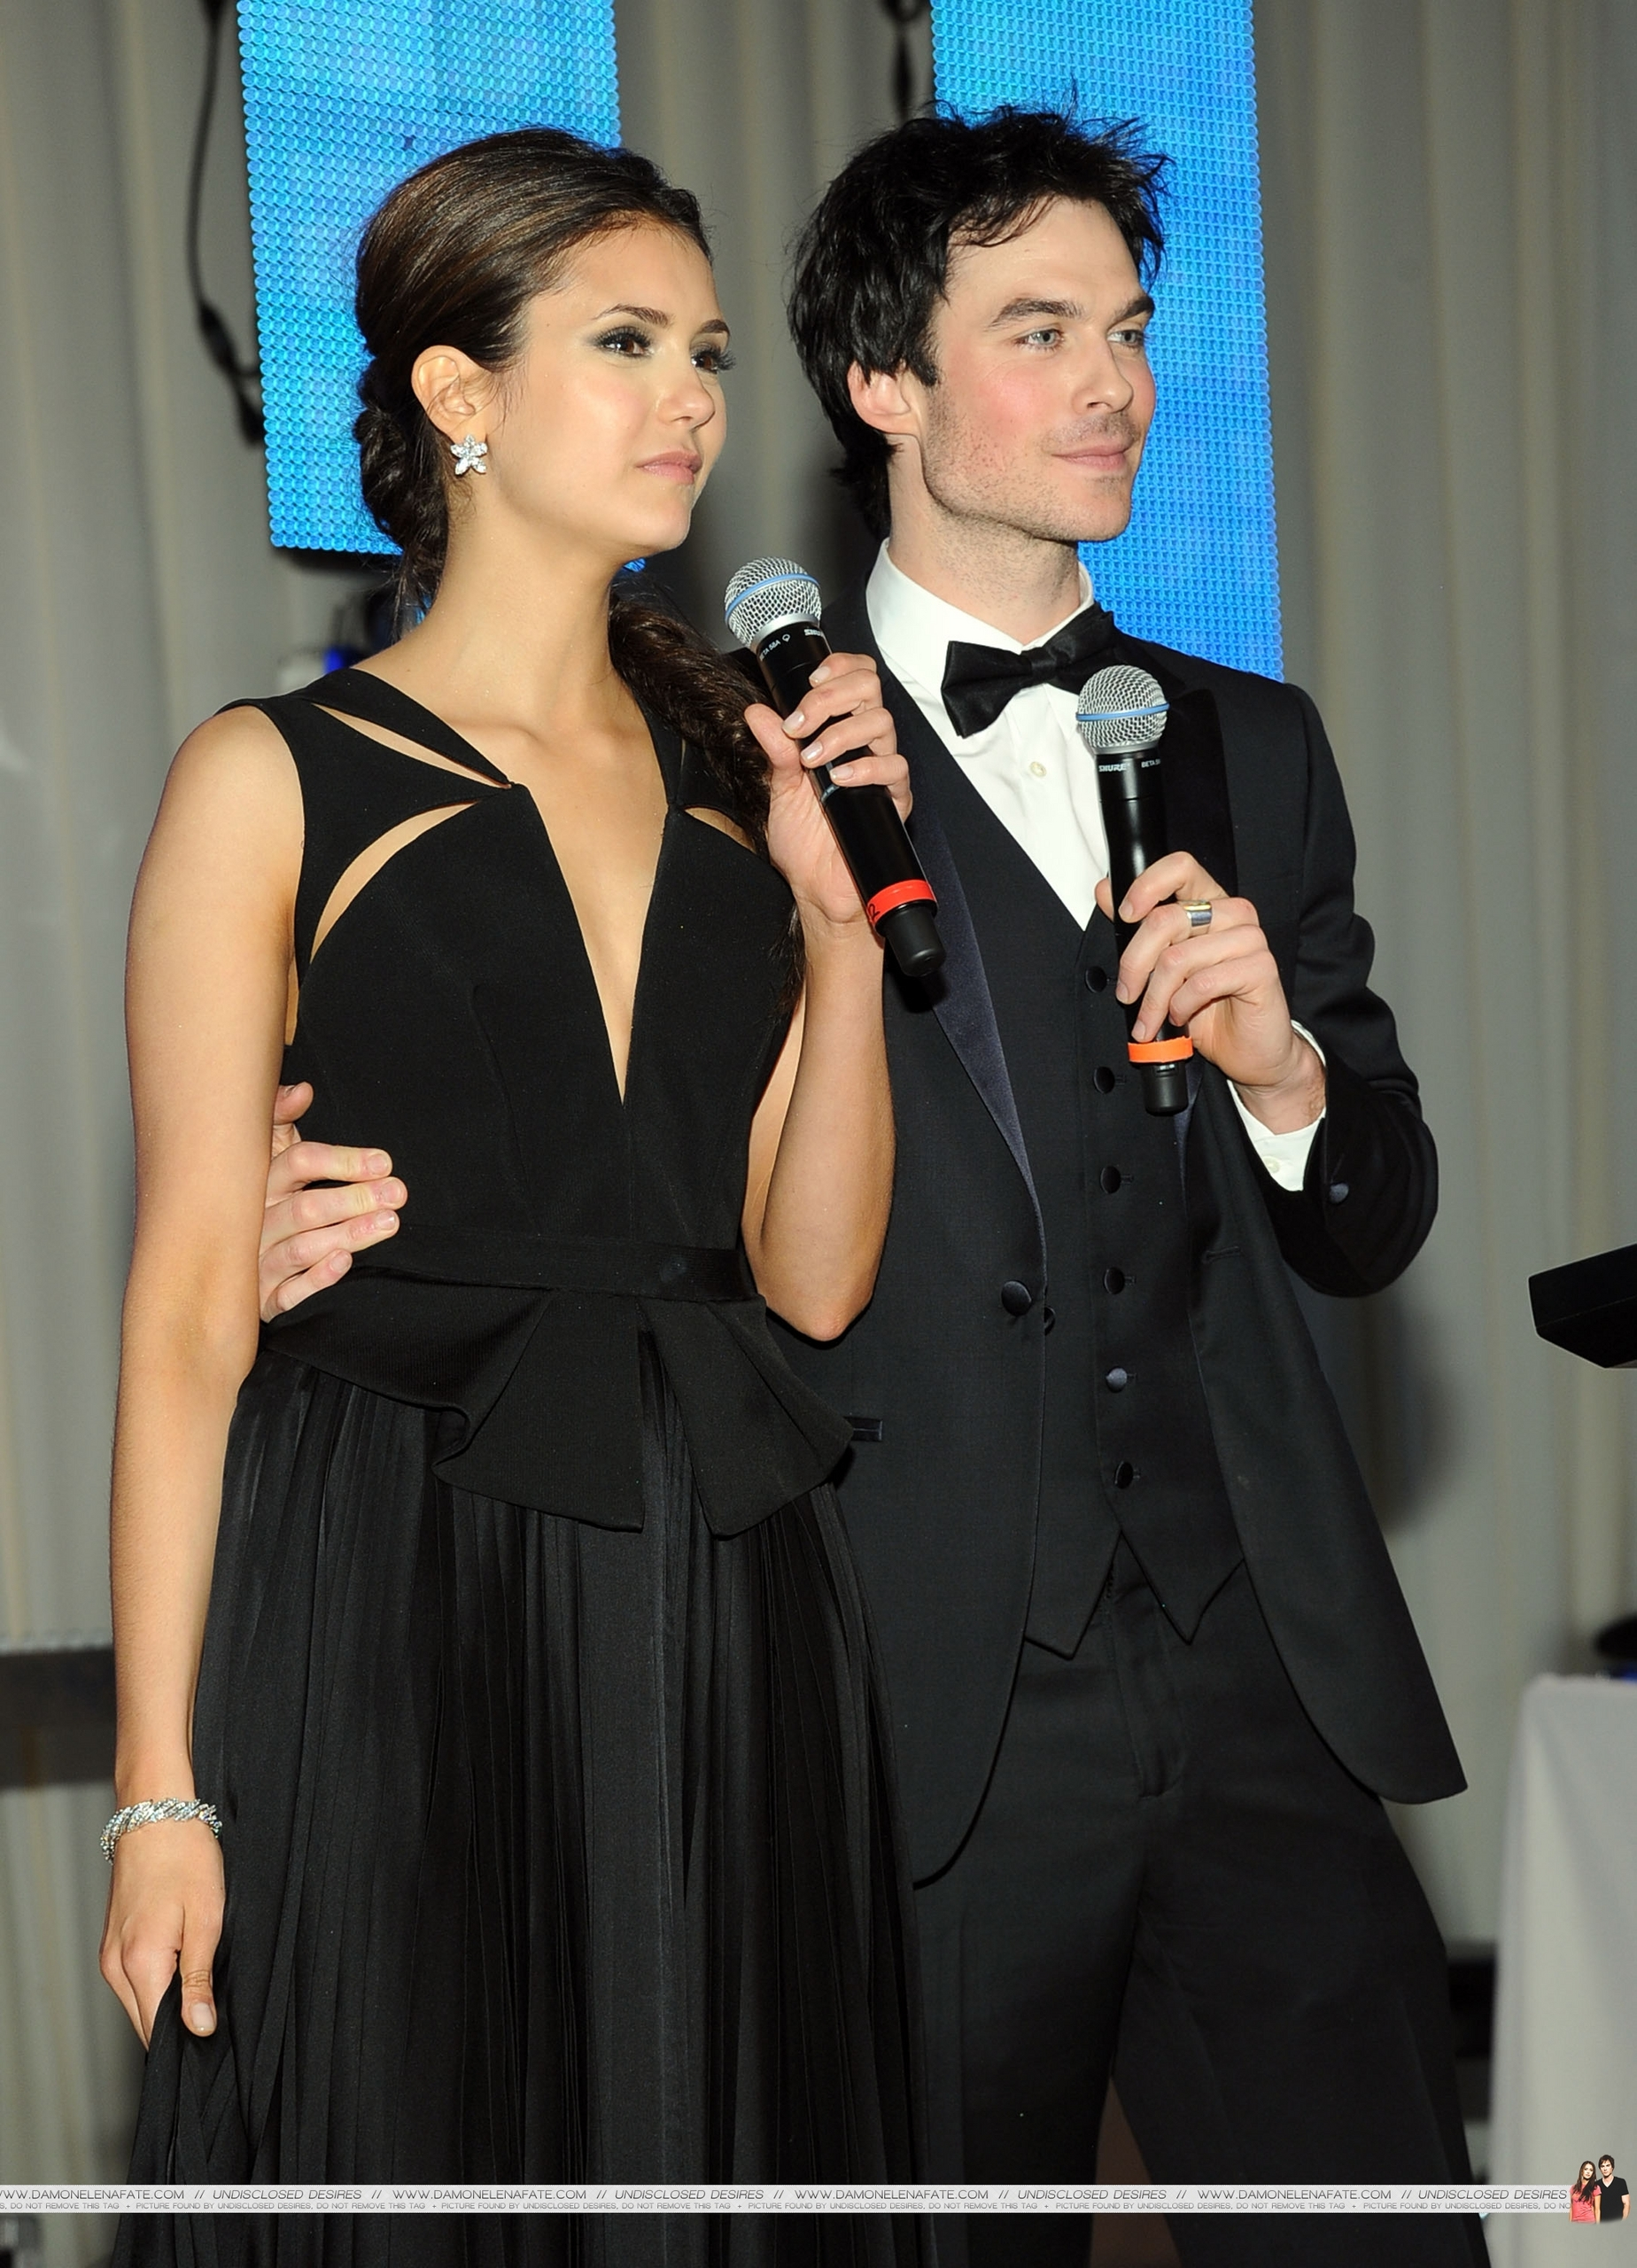 nina dobrev dating ian somerhalder 2012 It has been rumoured in recent weeks that ian somerhalder has proposed to his the vampire diaries co star girlfriend nina dobrev and that she actually rejected his proposal and the idea of marriage.